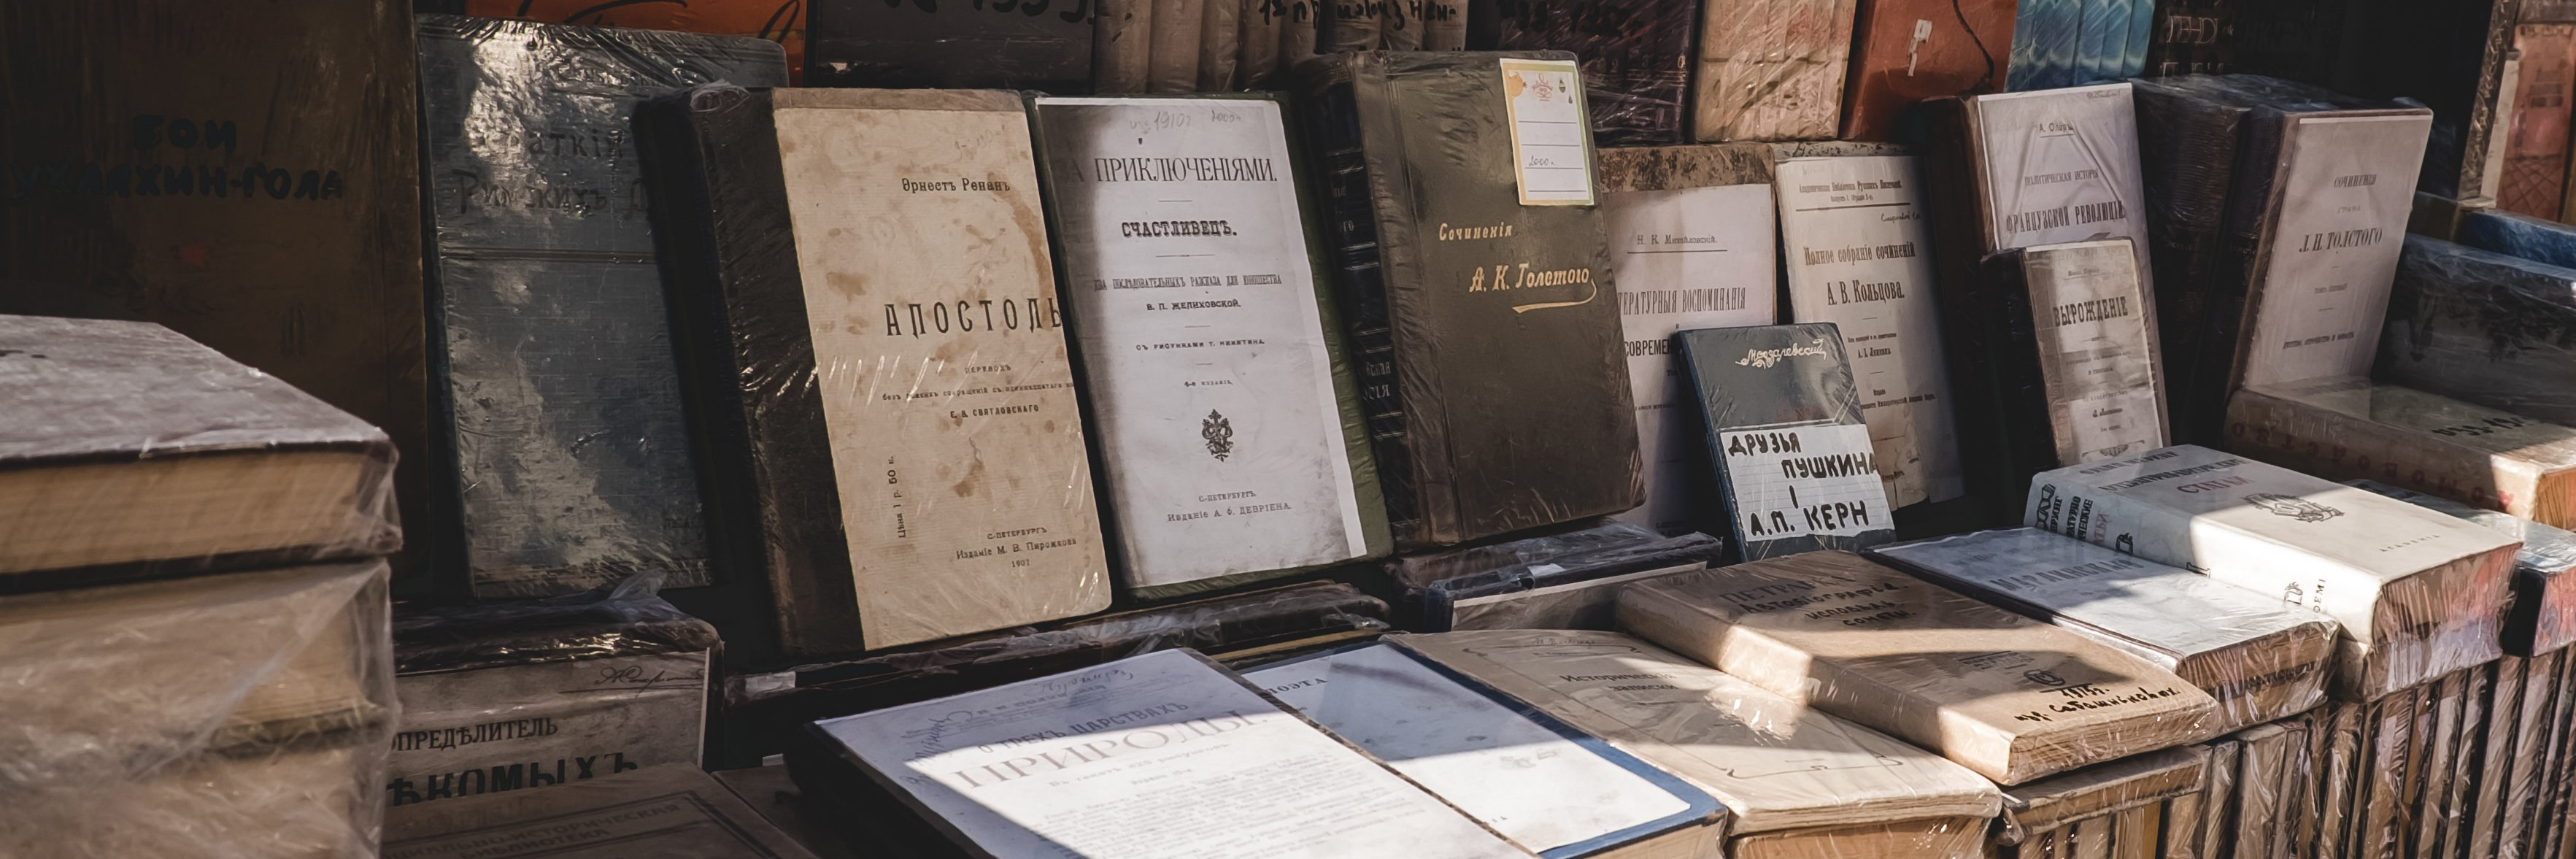 books in russian on display for sale